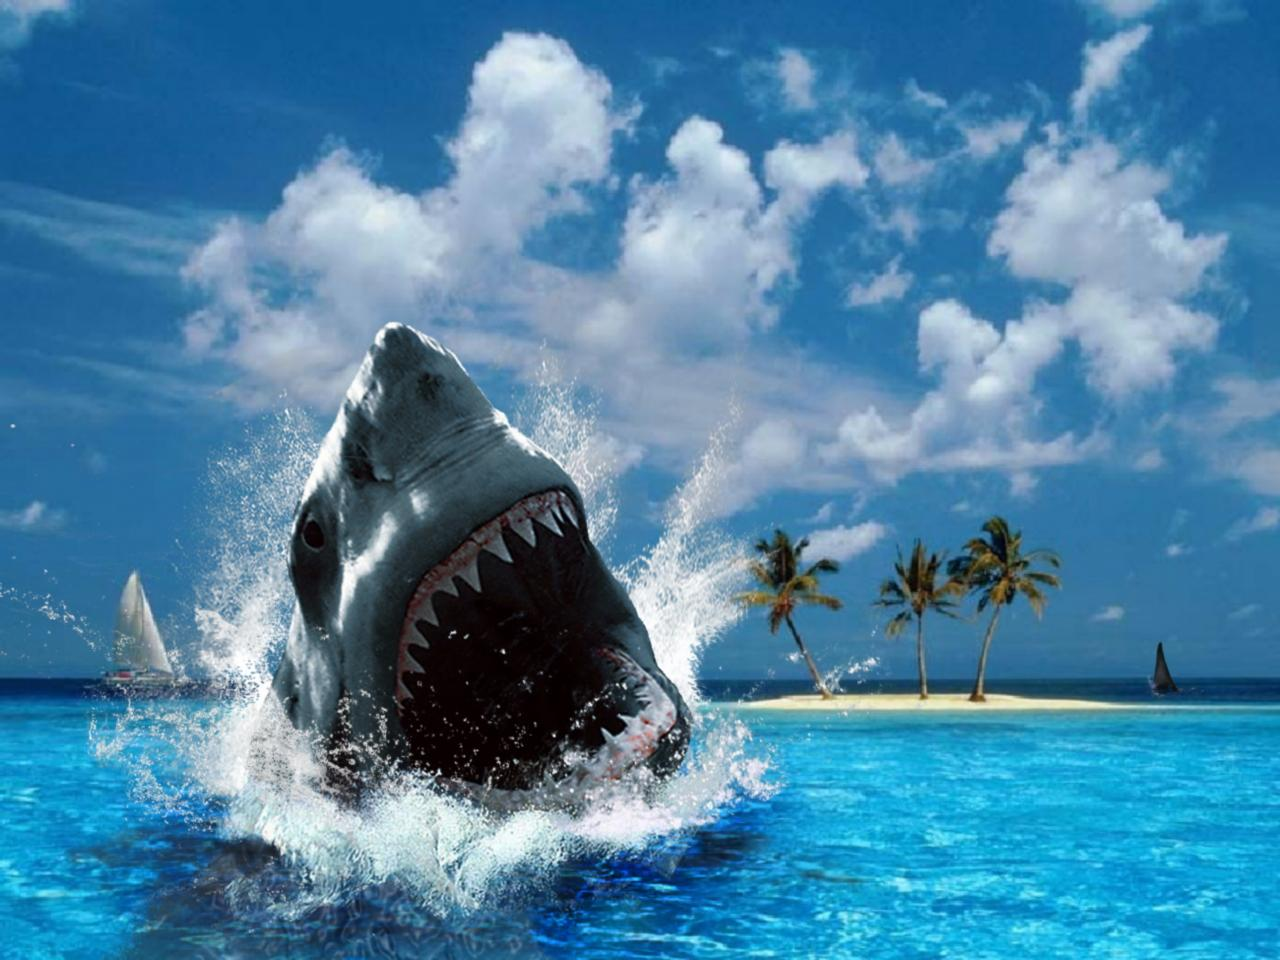 Shark Wallpapers with sea backgrounds suitable for adventure's desktop